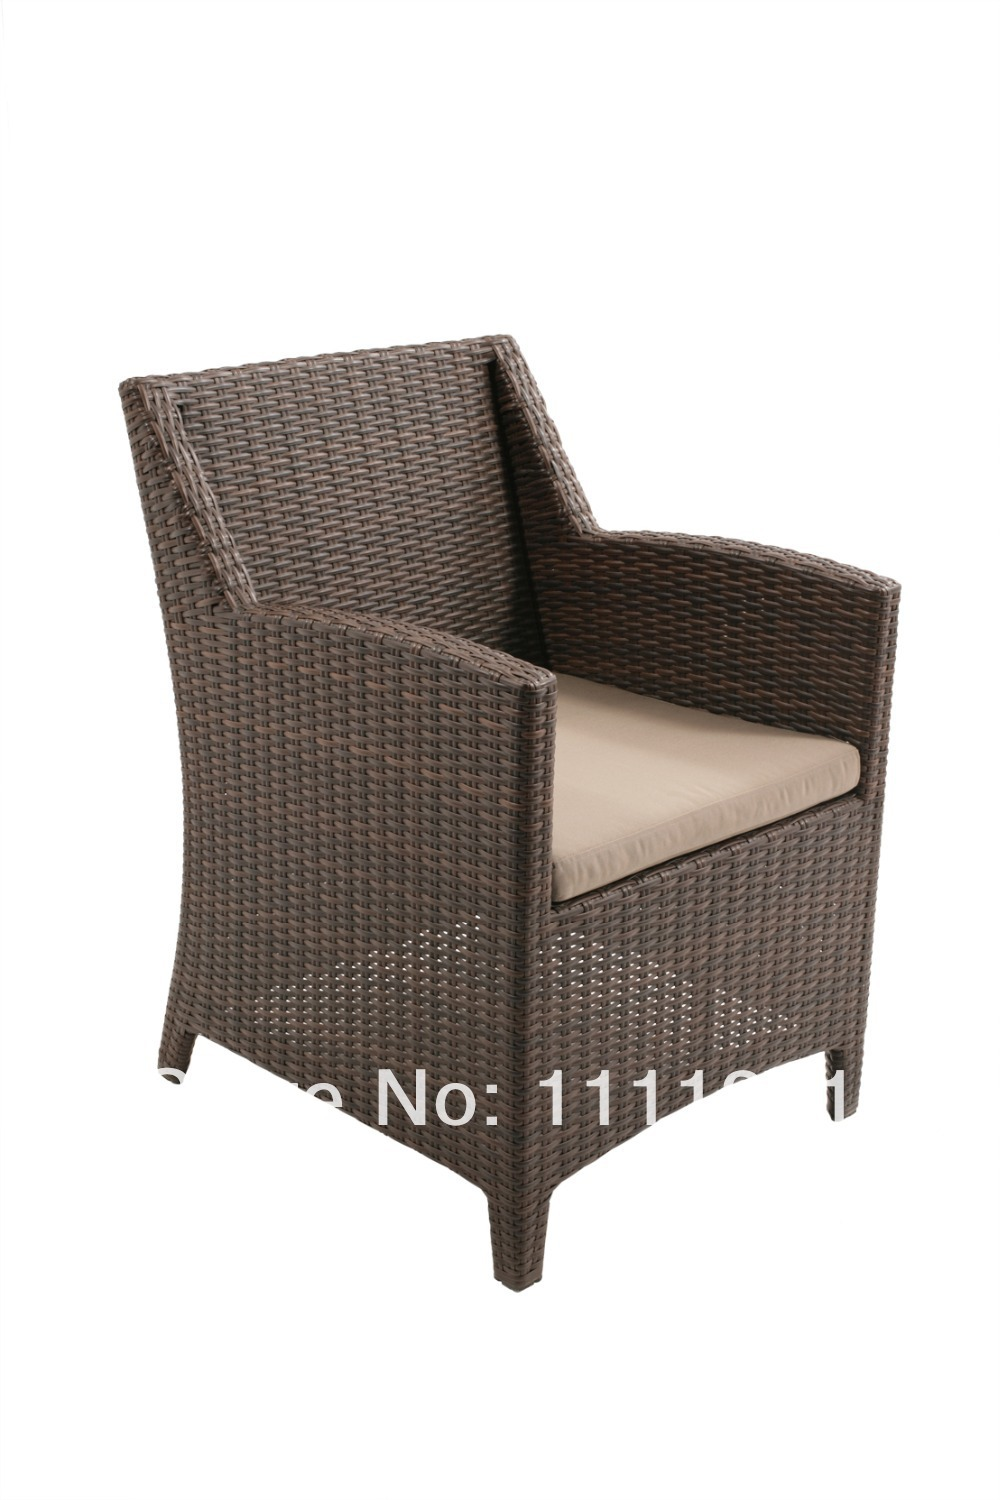 2014 Winter Sunbathing Outdoor Cane Chair Single Plastic Rattan Chair In  Garden Sofas From Furniture On Aliexpress.com   Alibaba Group